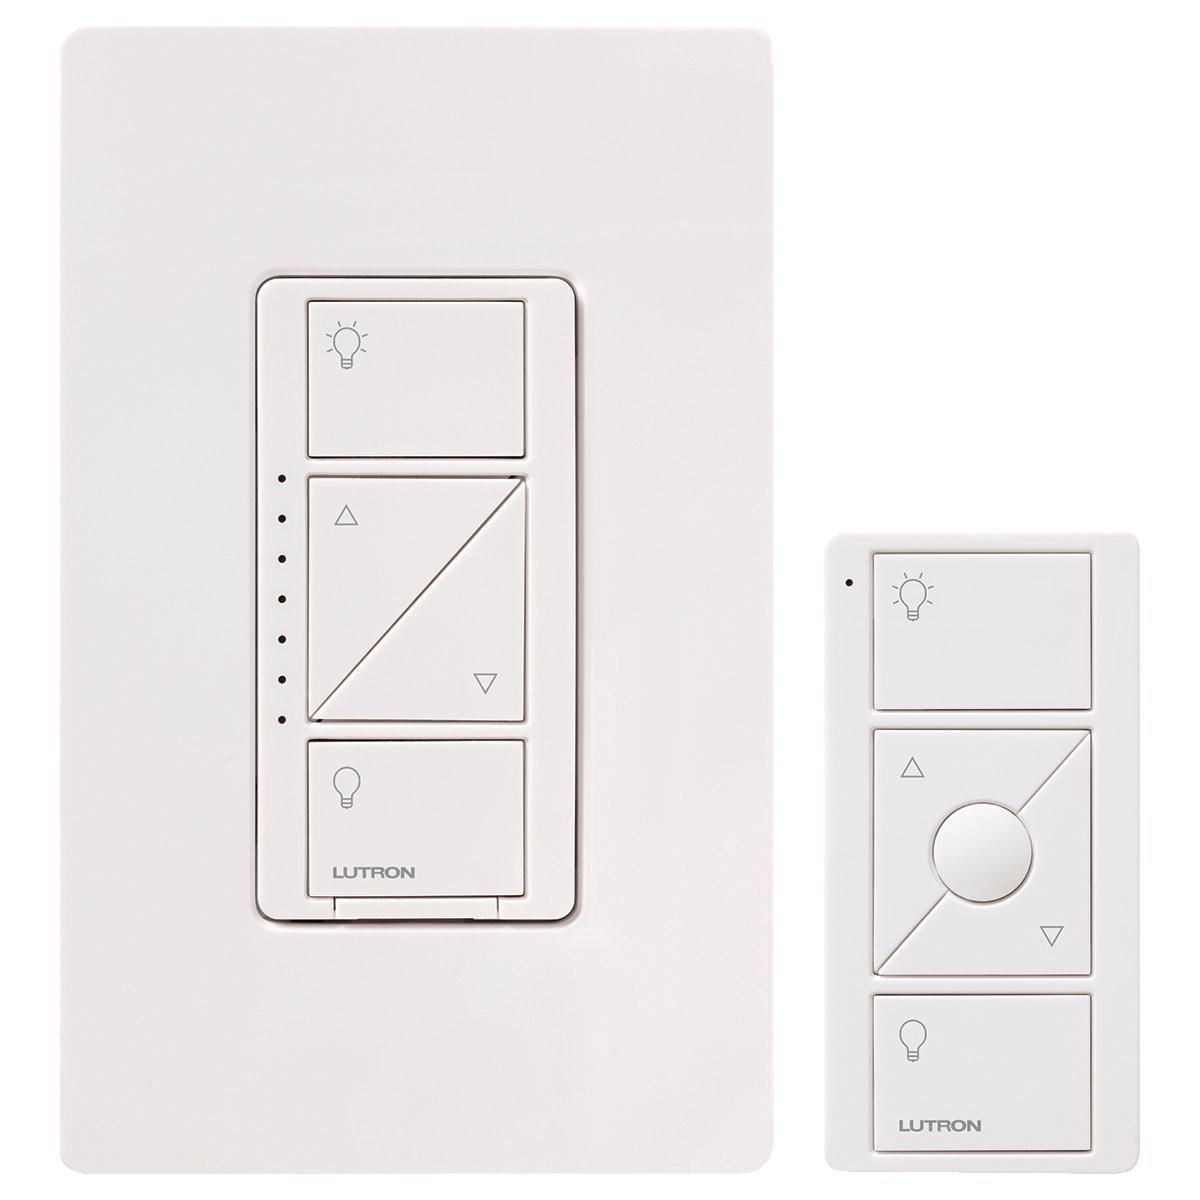 Lutron P-PKG1W-WH Caseta Wireless 600-watt/150-watt Multi-Location on 3 way dimmer wiring diagram, maestro dimmer switch, dual dimmer switch wiring diagram, dimmer switch installation diagram, fluorescent dimmer switch wiring diagram, harmony dimmer wiring diagram, lutron dimmer switches wiring diagram,